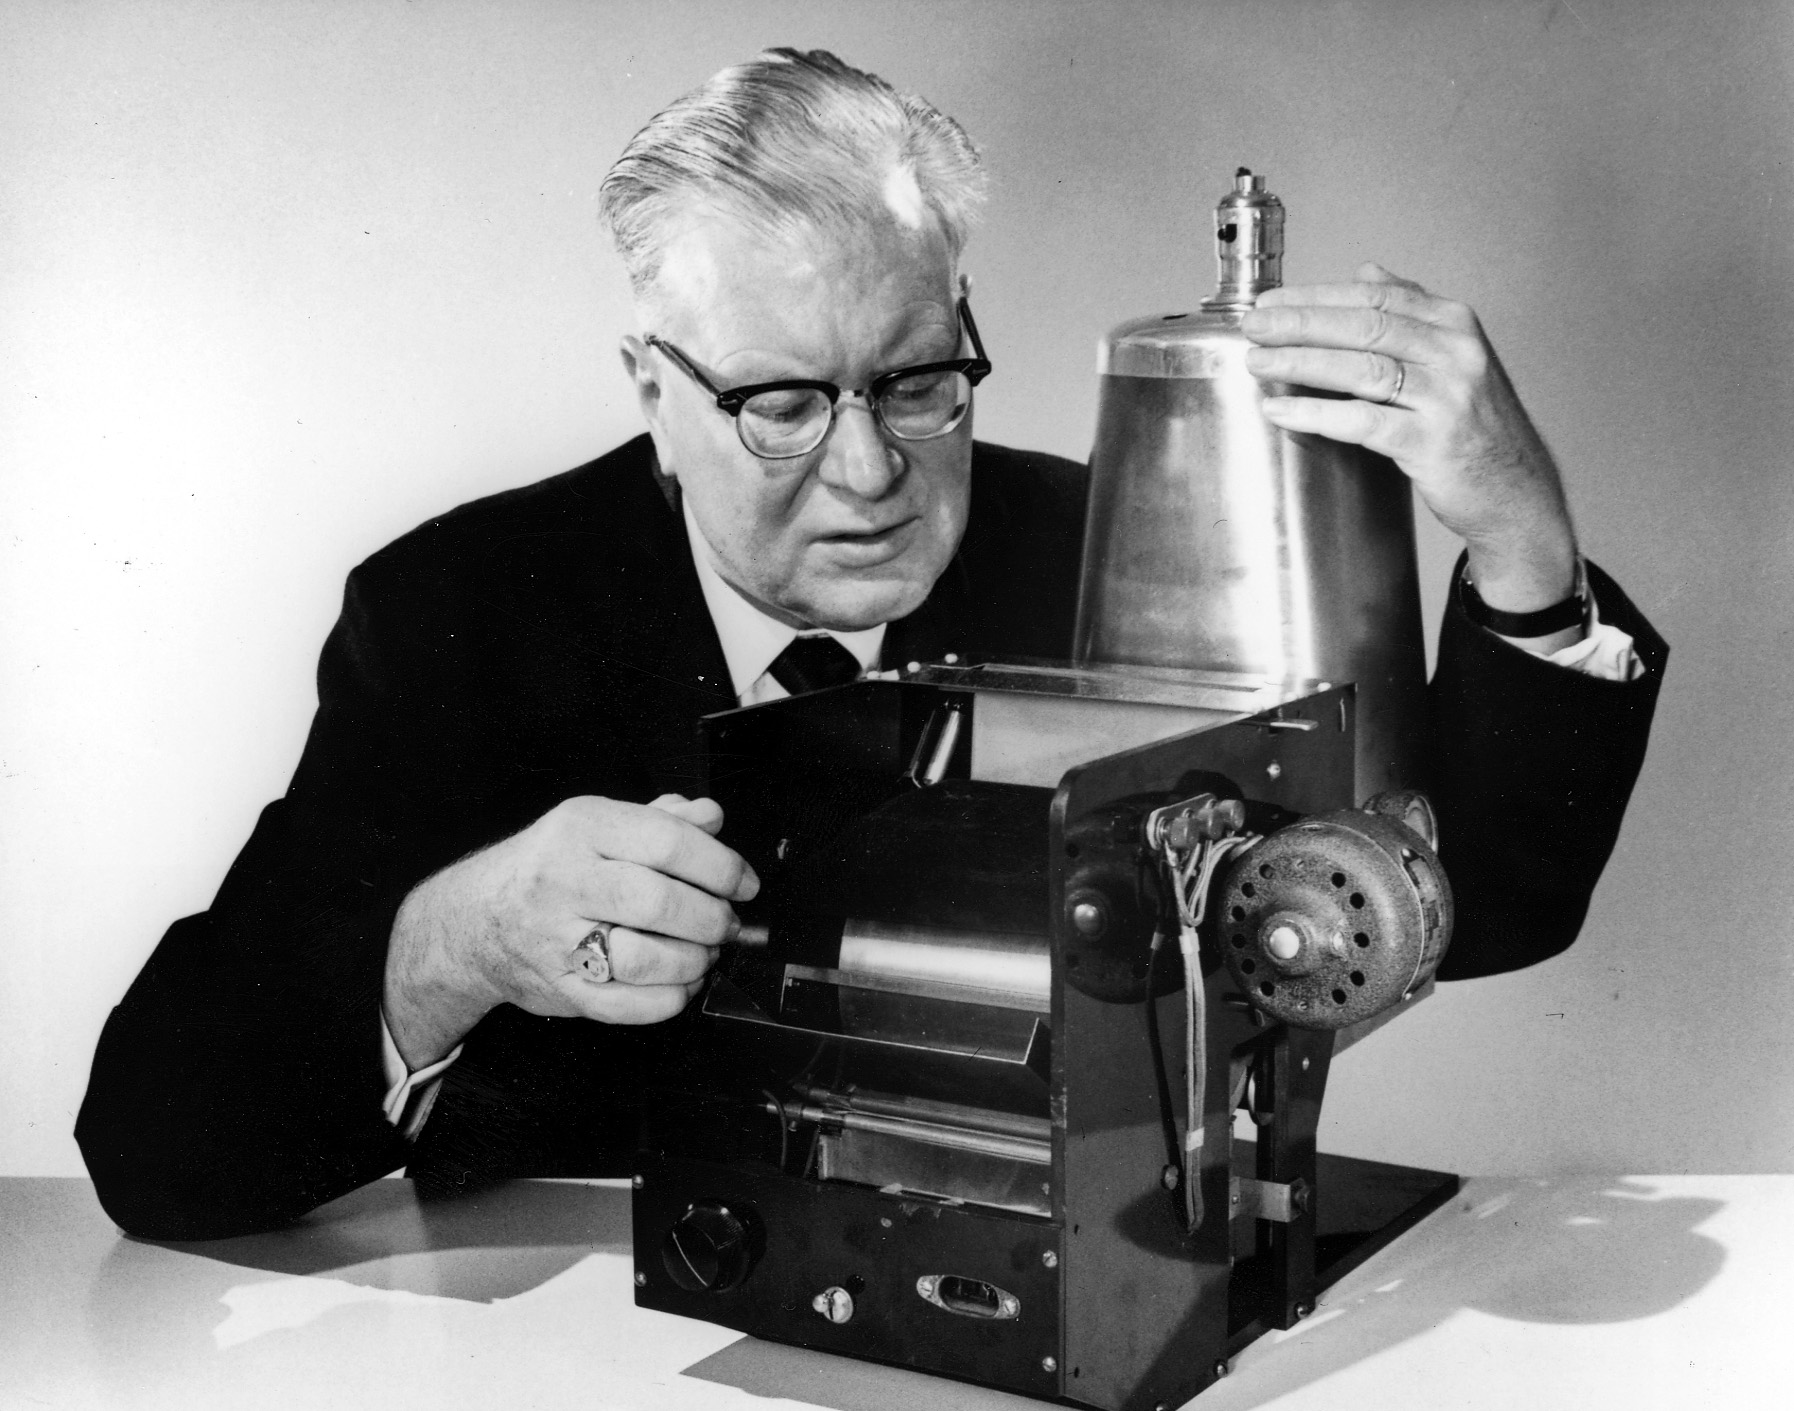 a biography of chester carlson Chester carlson: the hard life that gave us photocopiers.